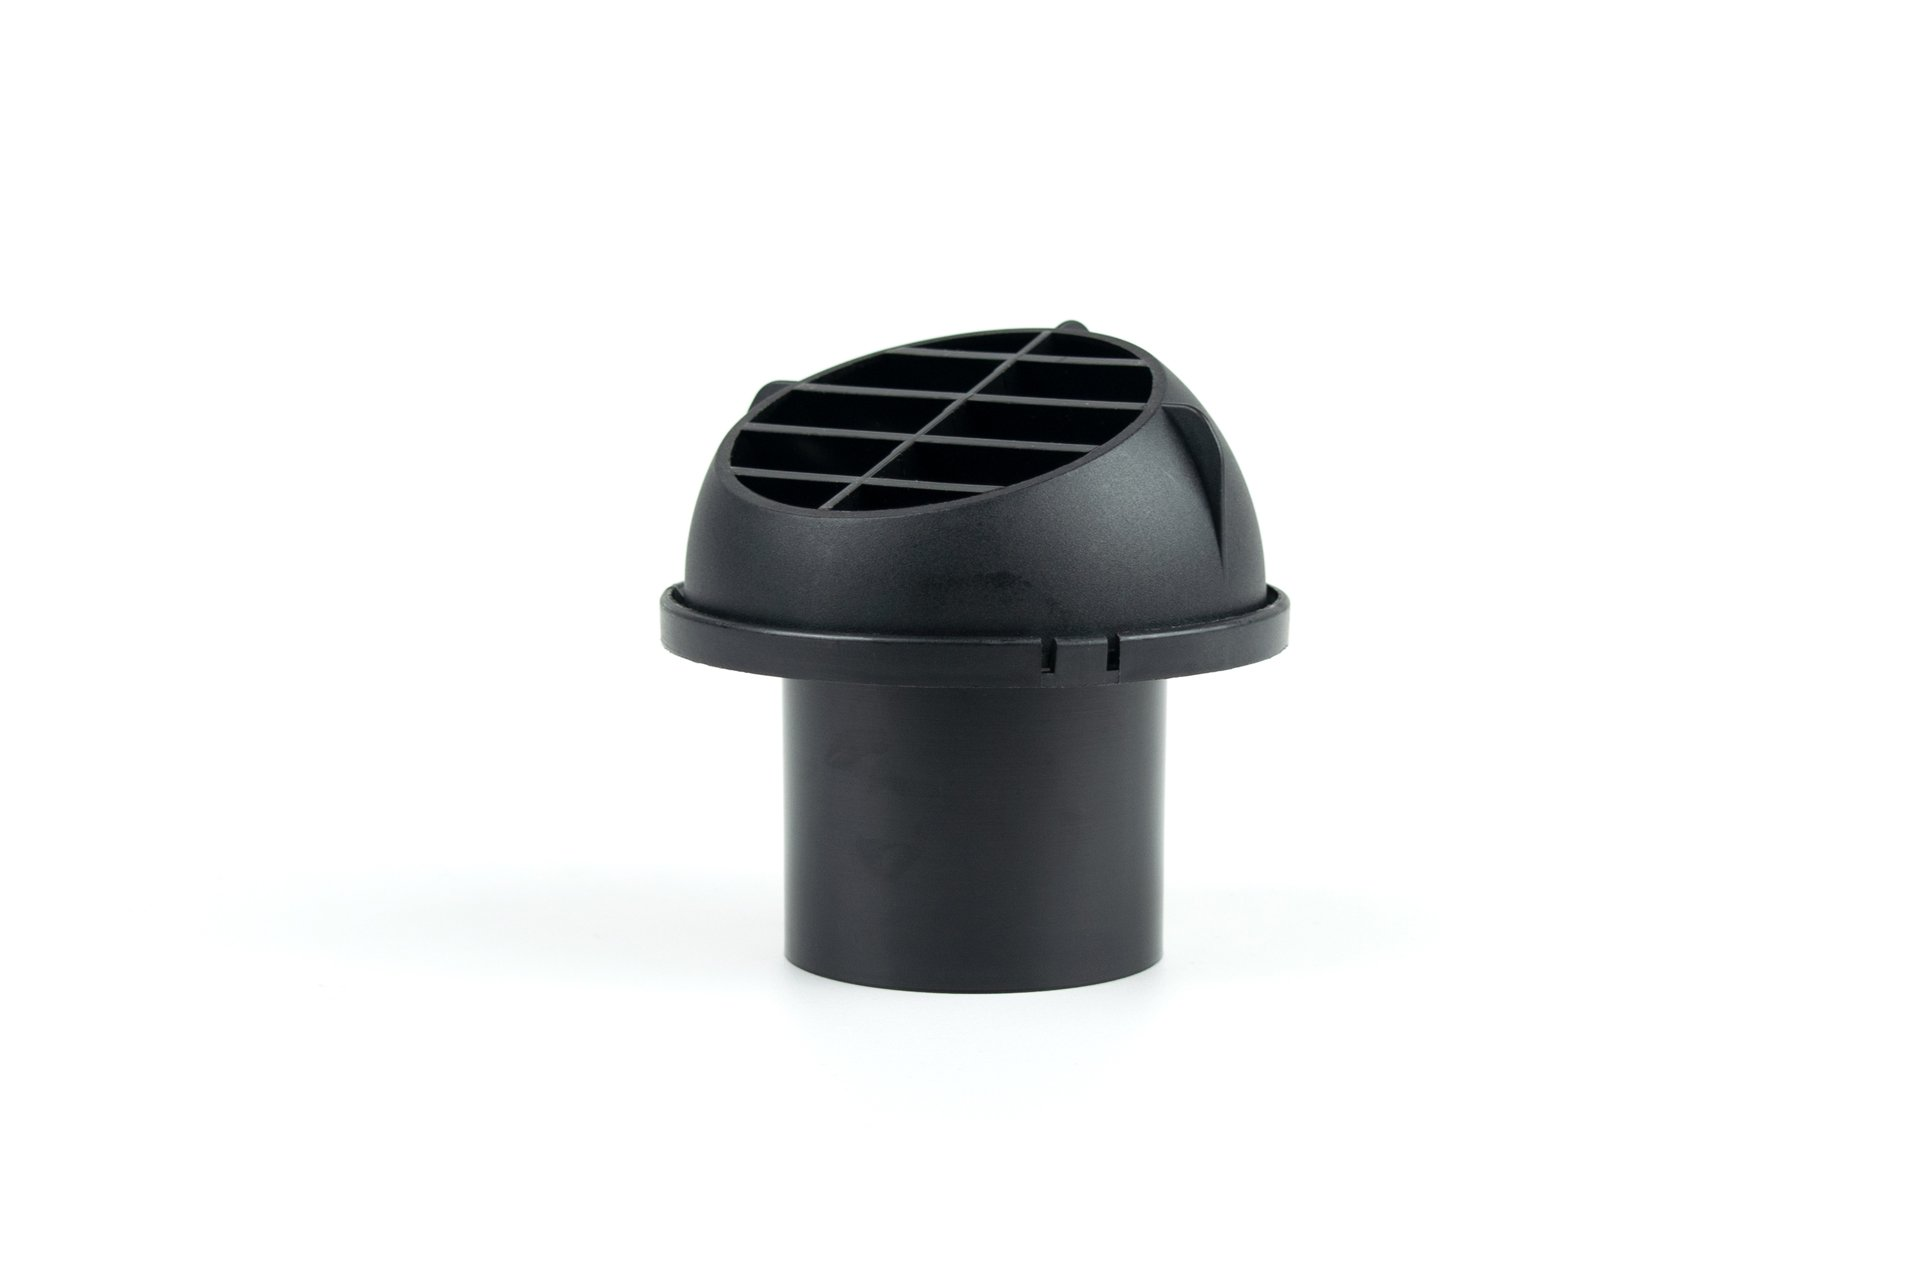 Autoterm Planar Adjustable Vent 60mm